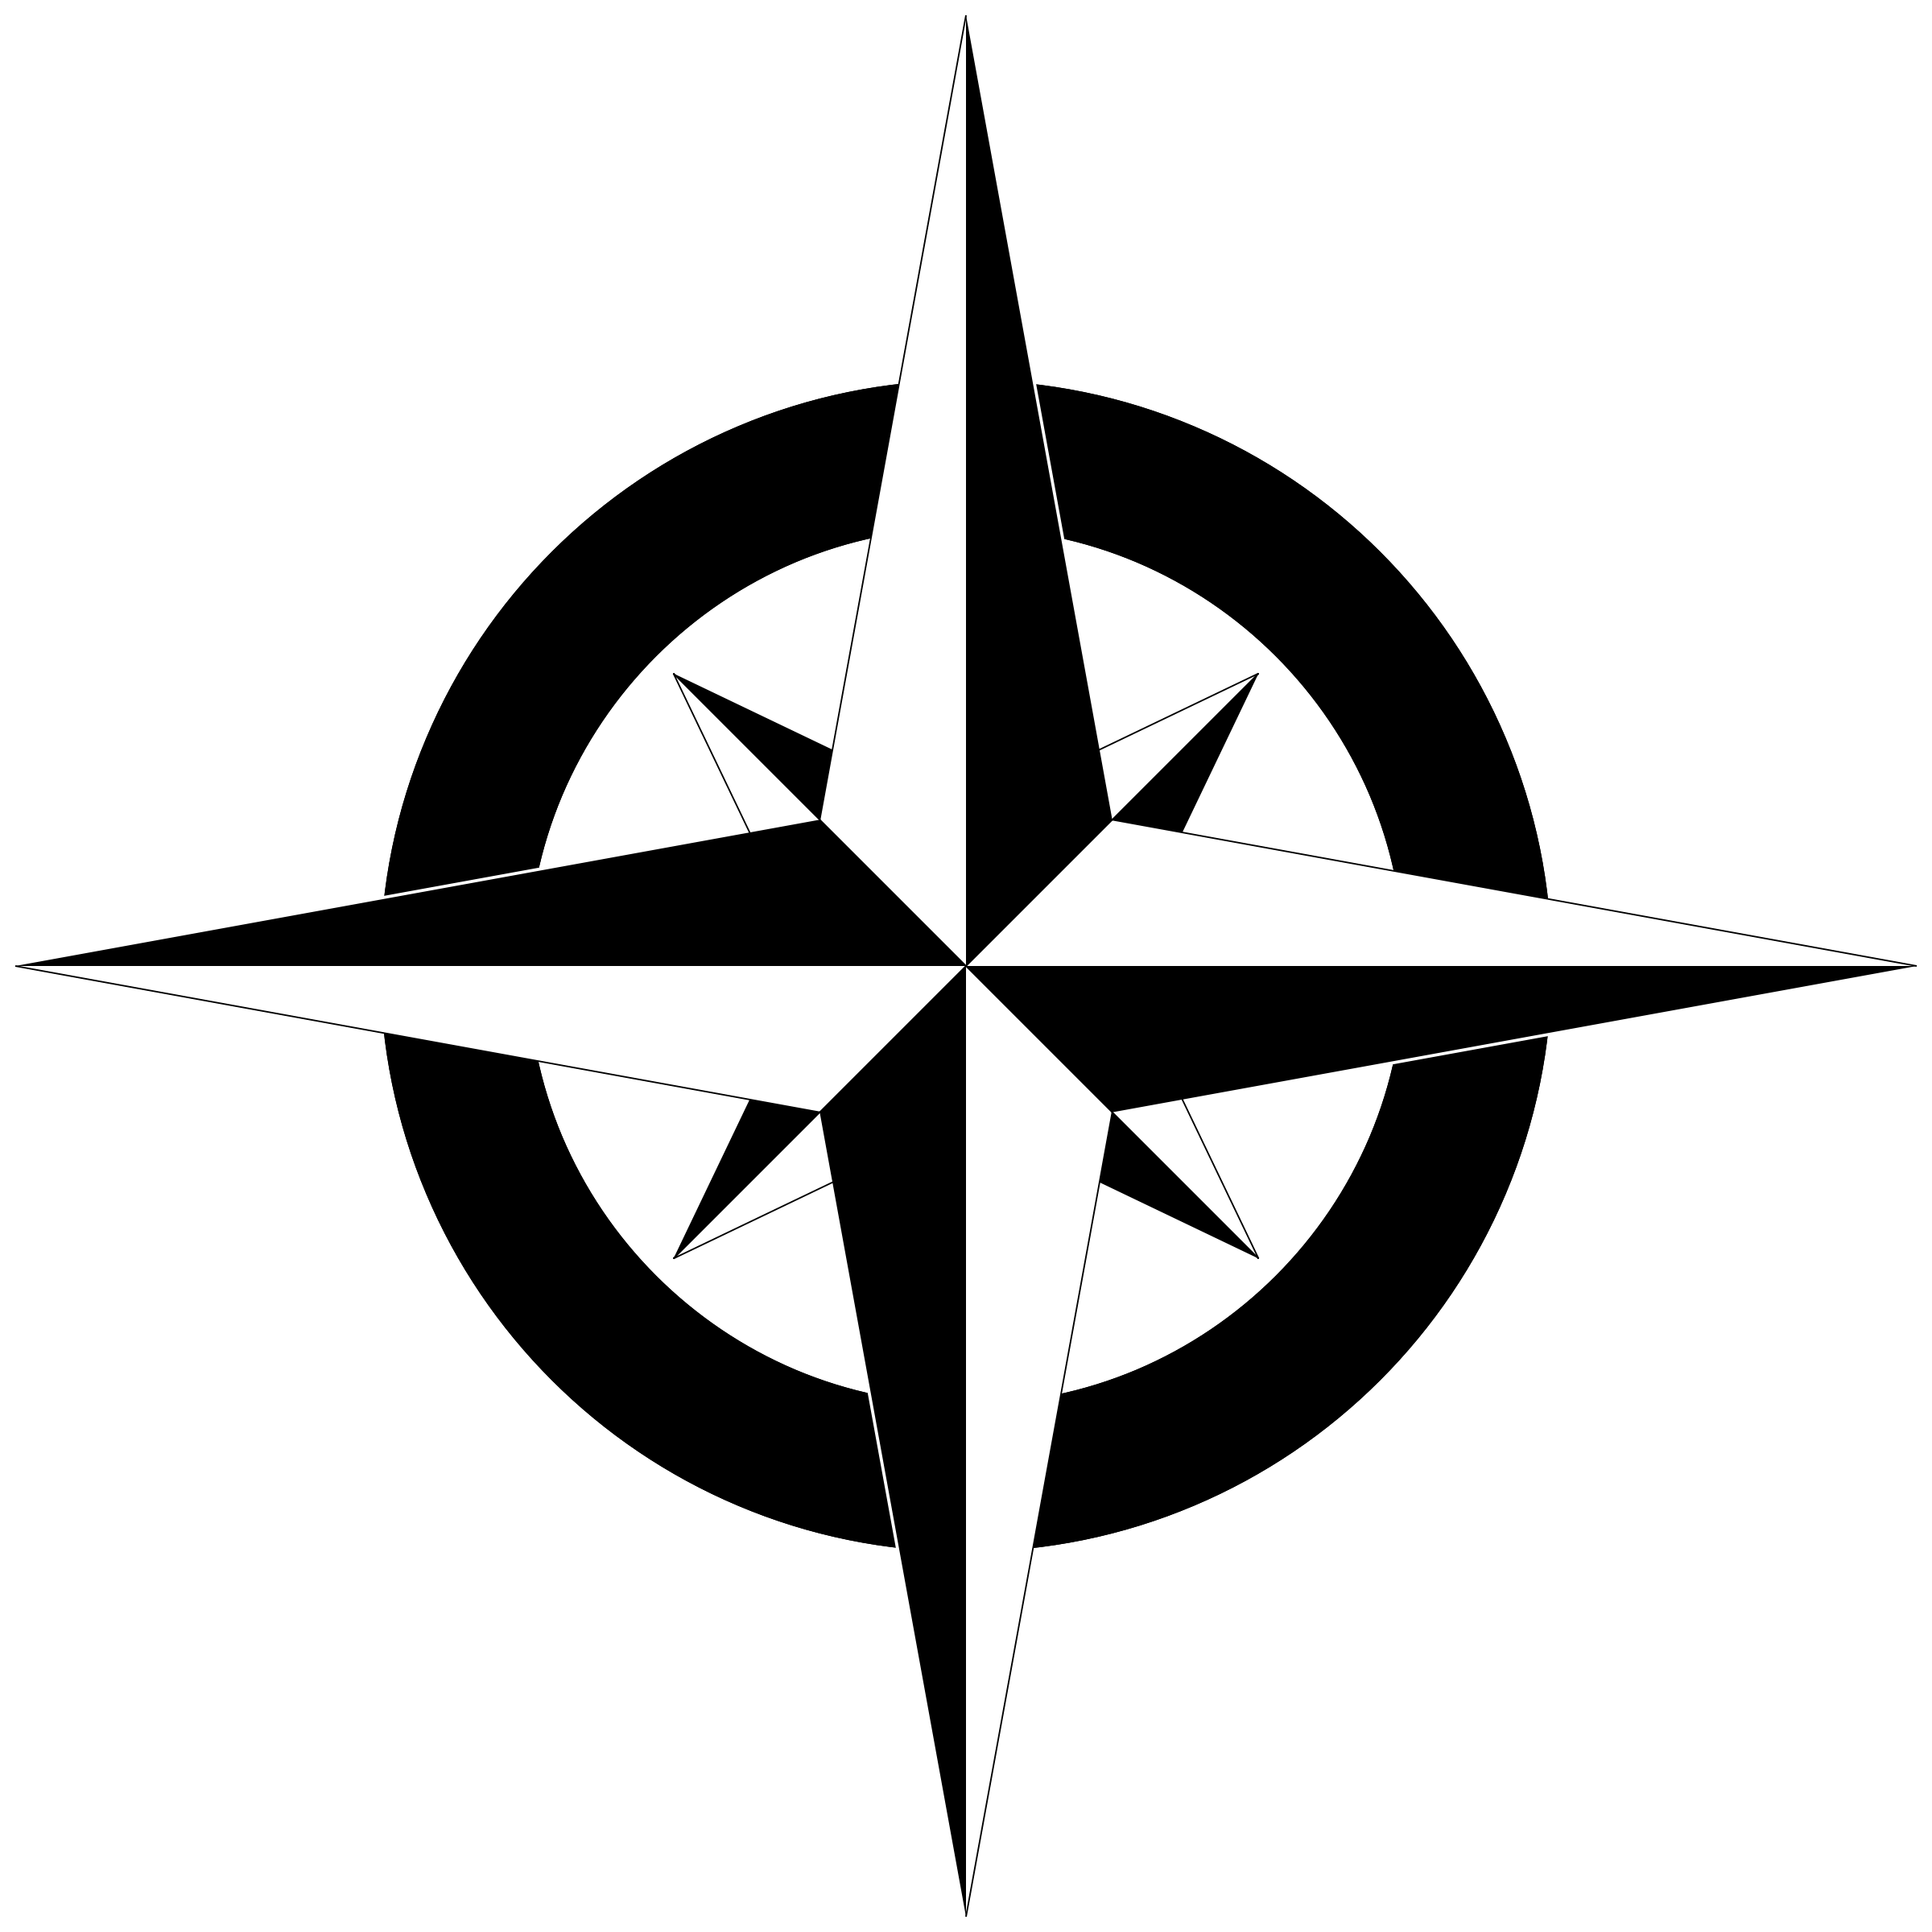 Free Simple Compass, Download Free Clip Art, Free Clip Art.